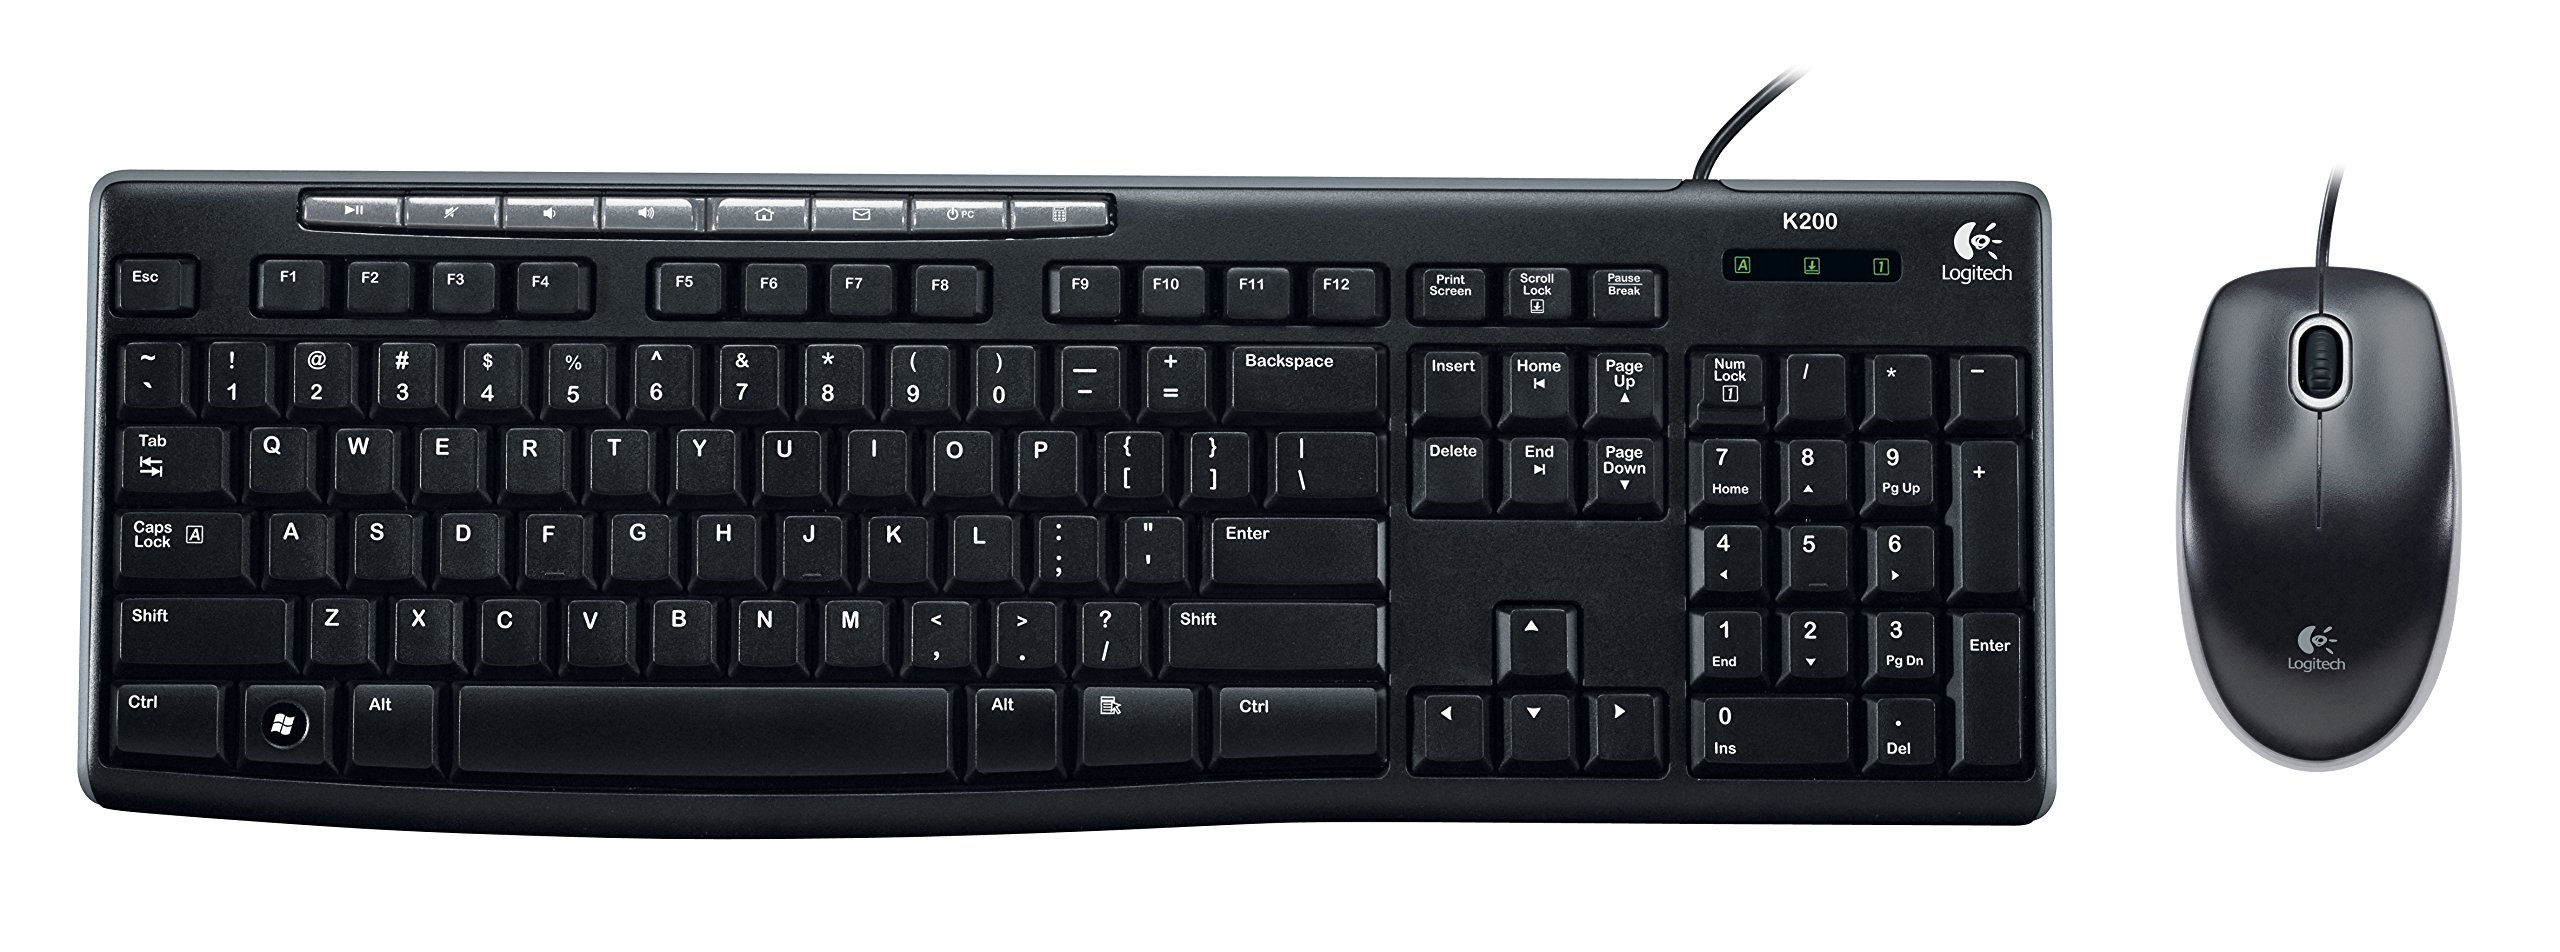 galleon logitech media combo mk200 full size keyboard and high definition optical mouse 920. Black Bedroom Furniture Sets. Home Design Ideas